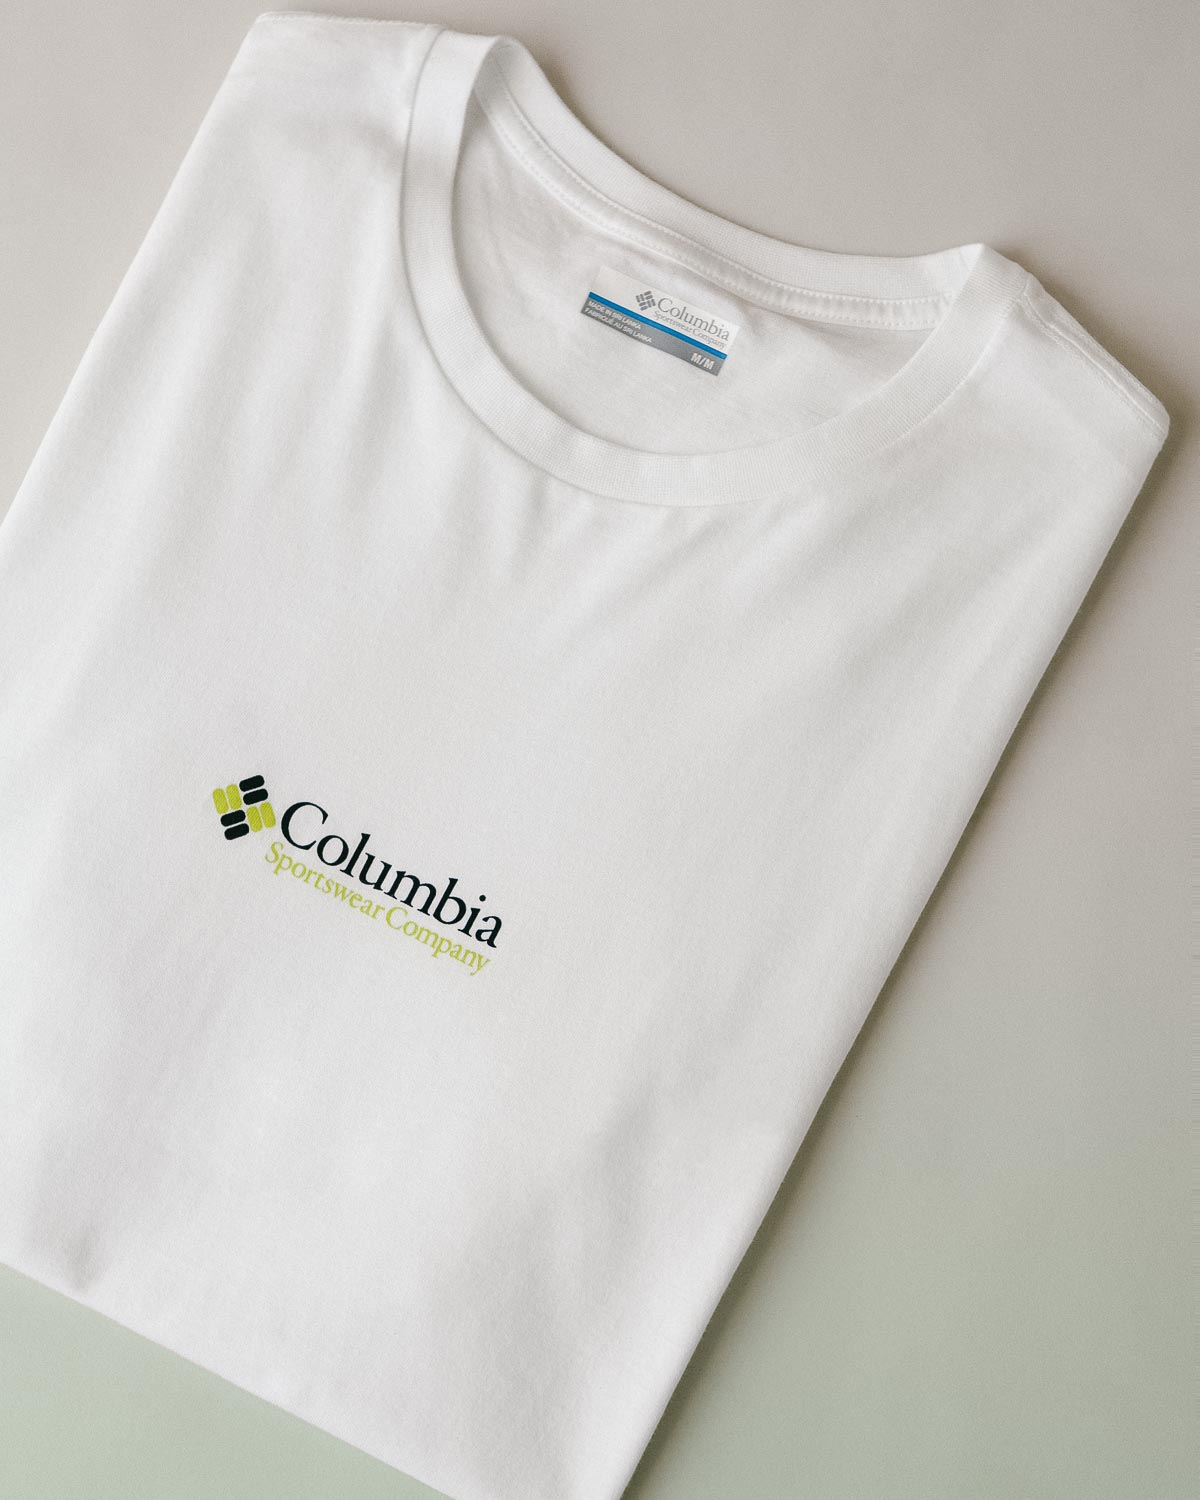 Introducing: Columbia   Aways in Colour